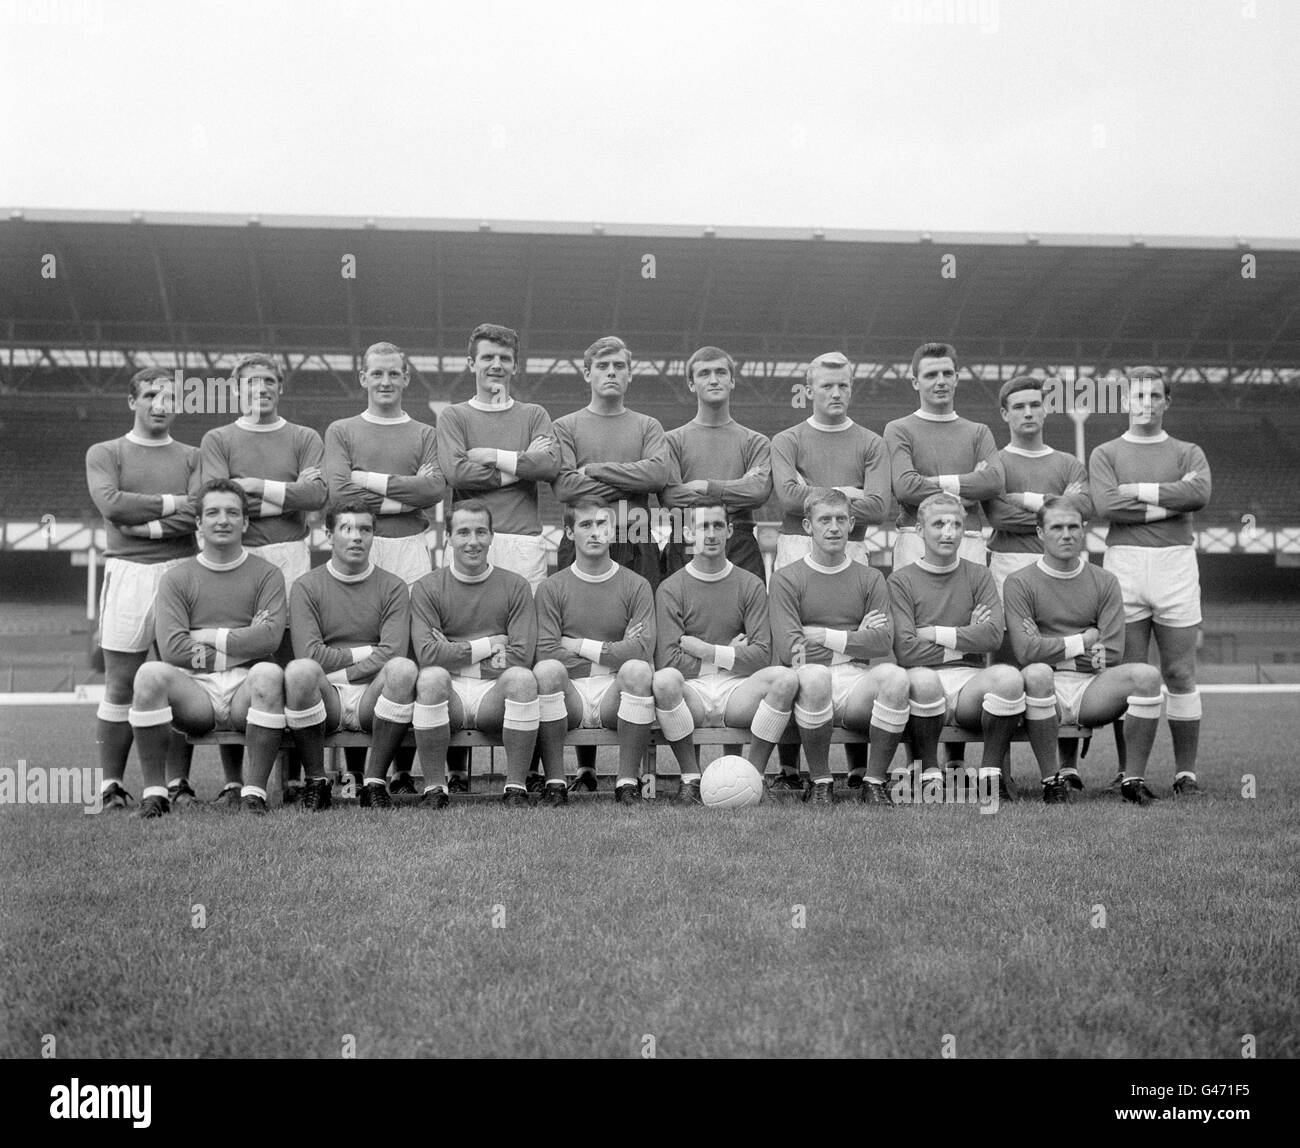 Soccer - Football League Division One - Everton Photocall - Stock Image